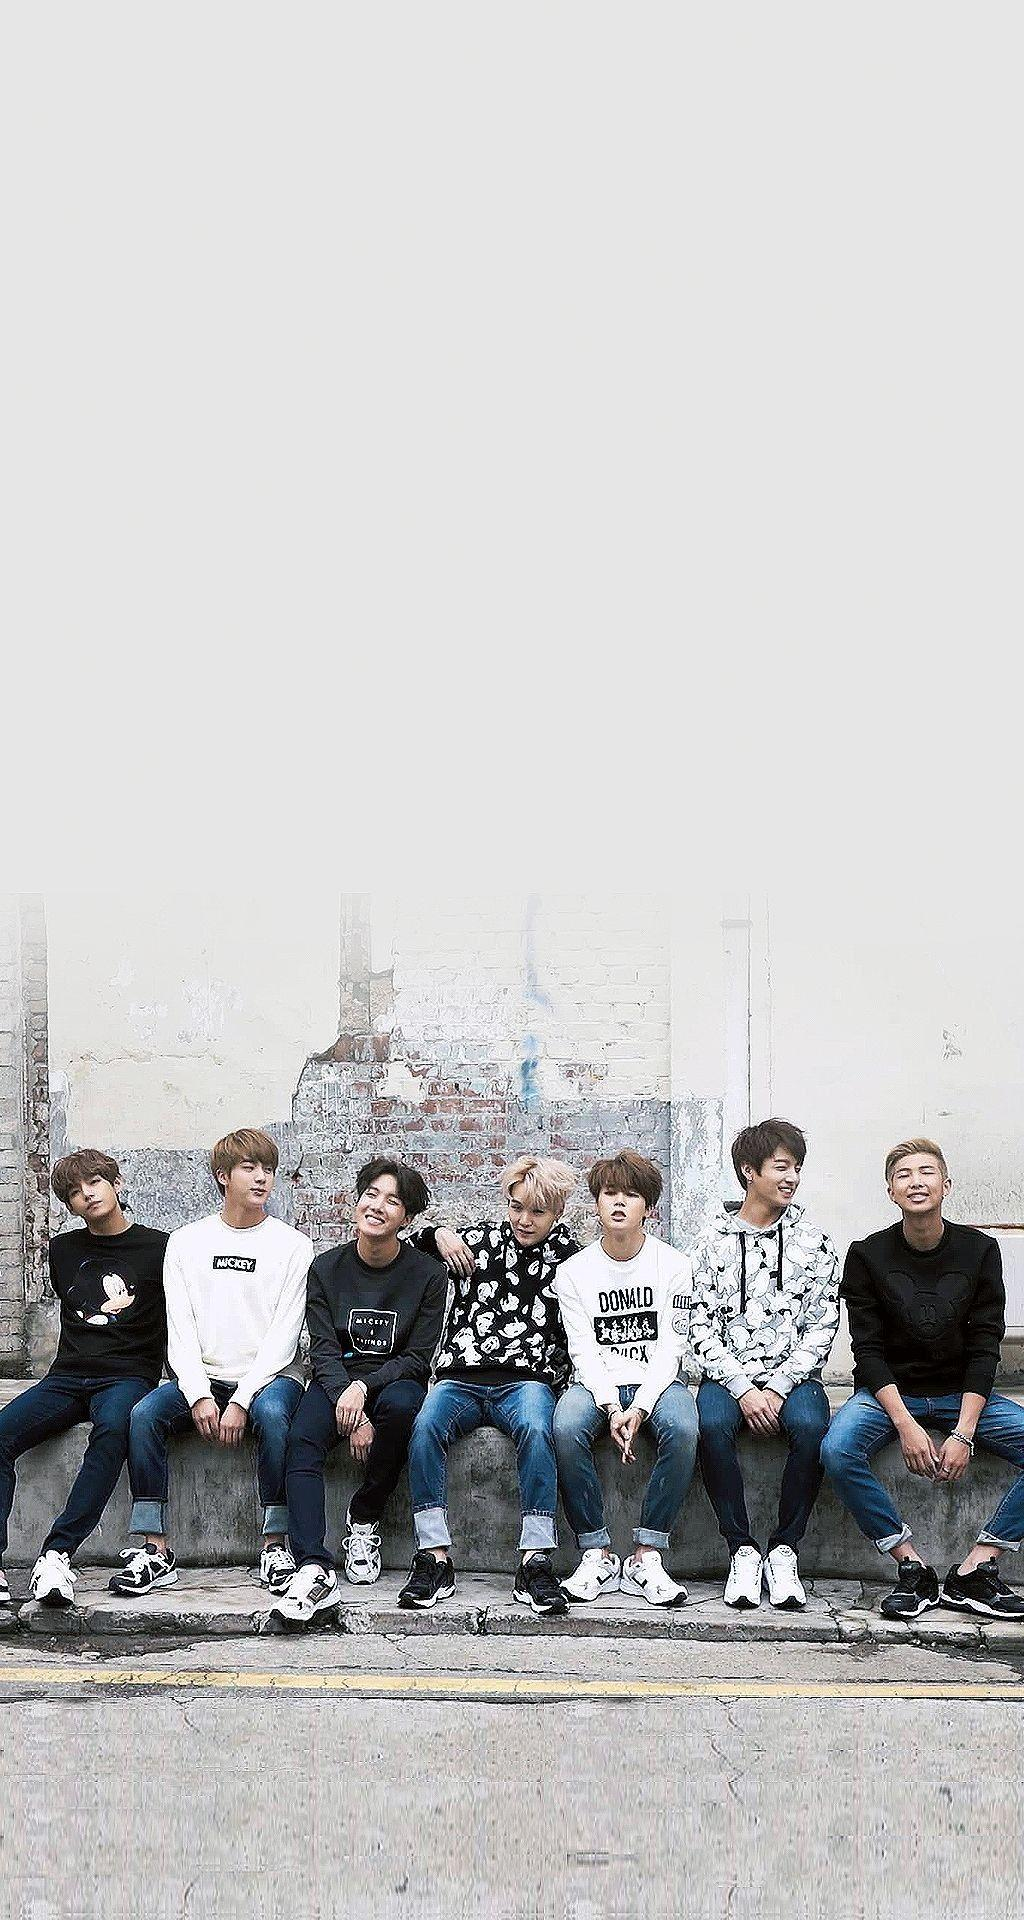 Bts Aesthetic Wallpapers Hd Lovely Bts Wallpapers for Phone Love Bts